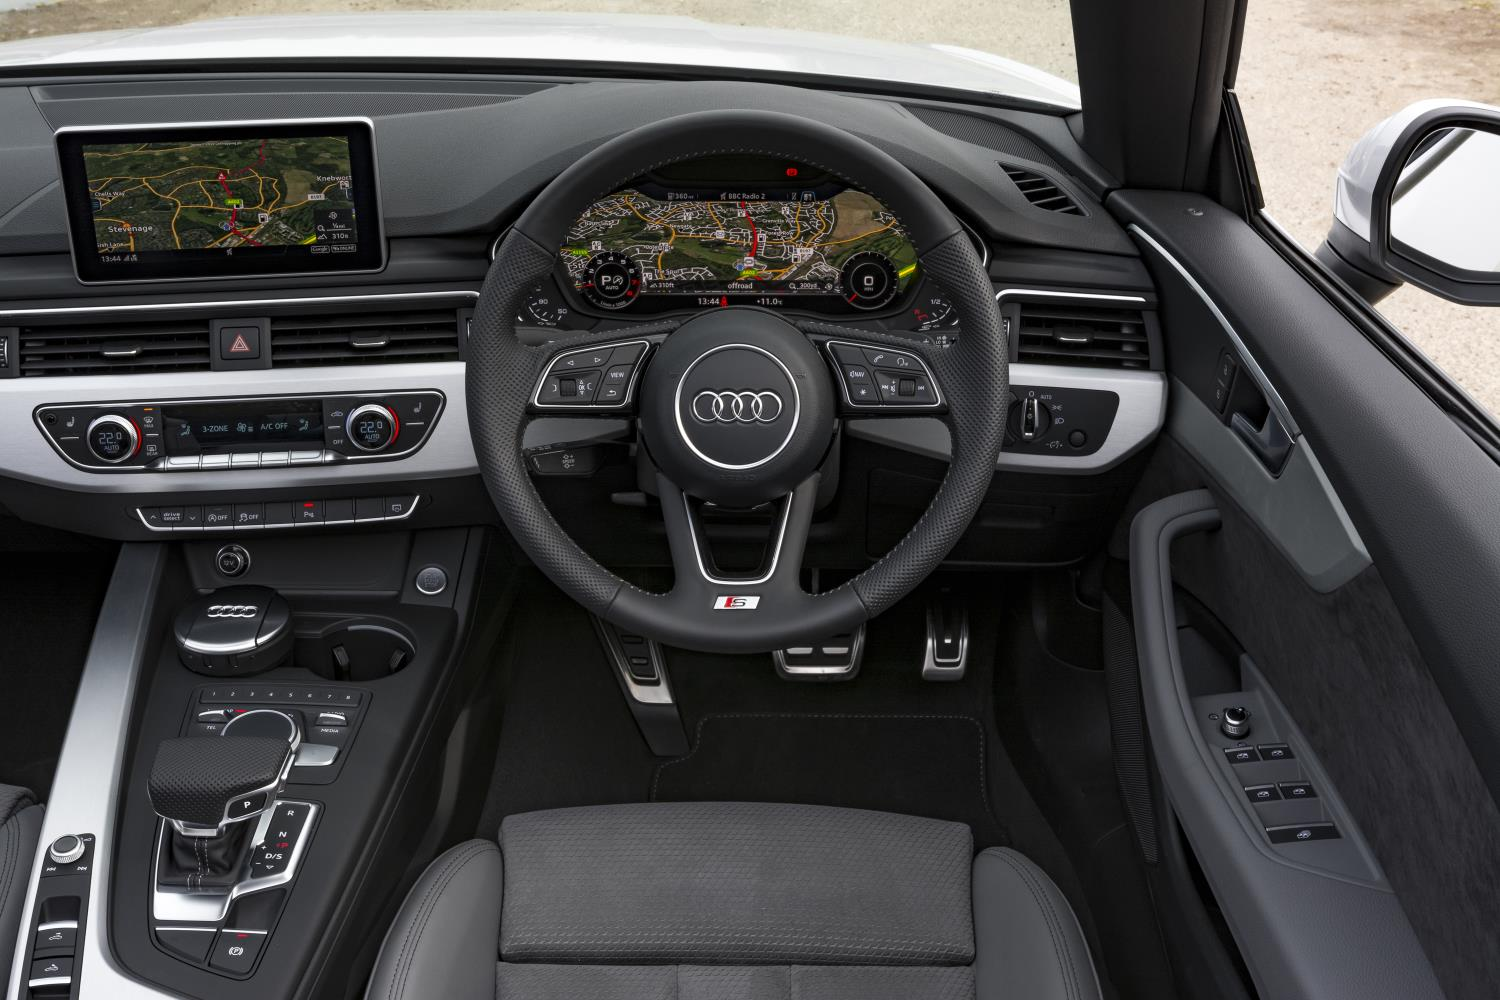 Driver's cockpit in a white Audi A5 Cabriolet with grey leather interior and the roof down